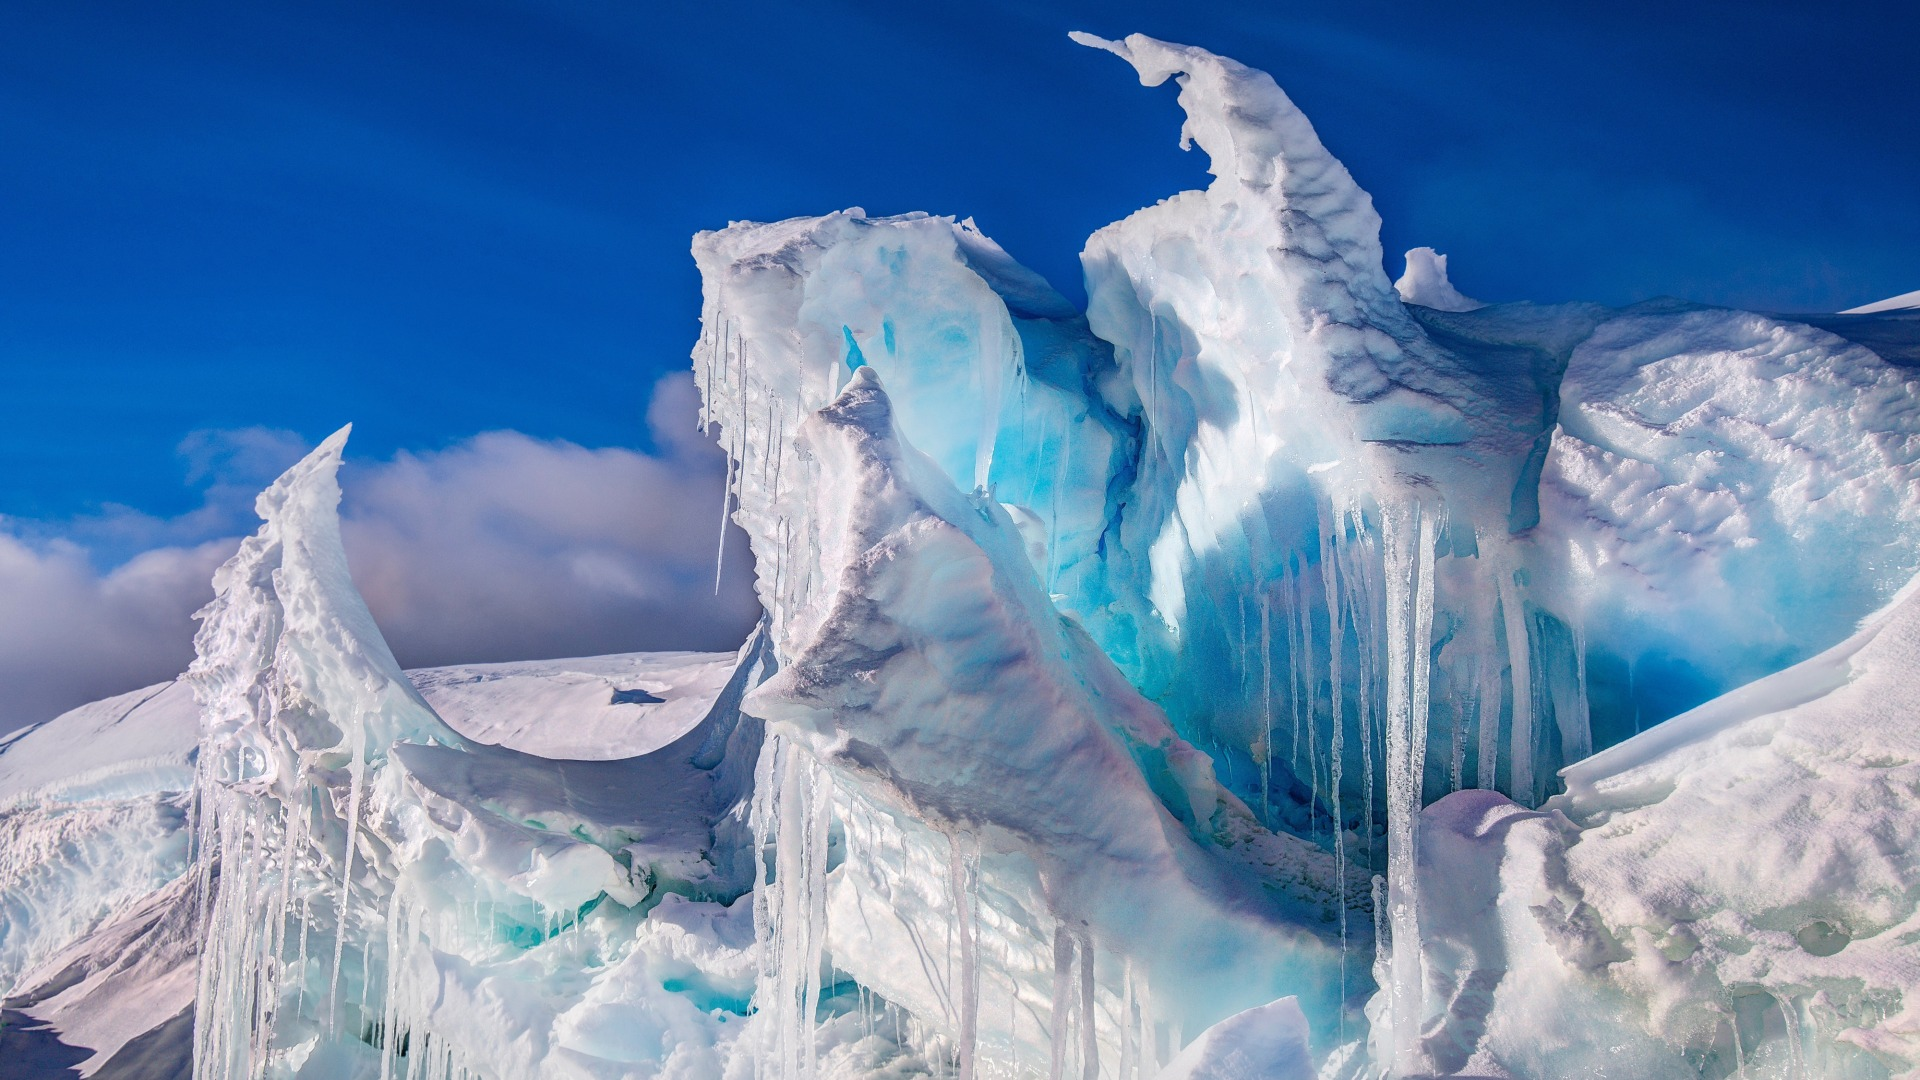 Download-icicles-ice-Antarctica-section-Resolution-1920x1080-wallpaper-wp3404967